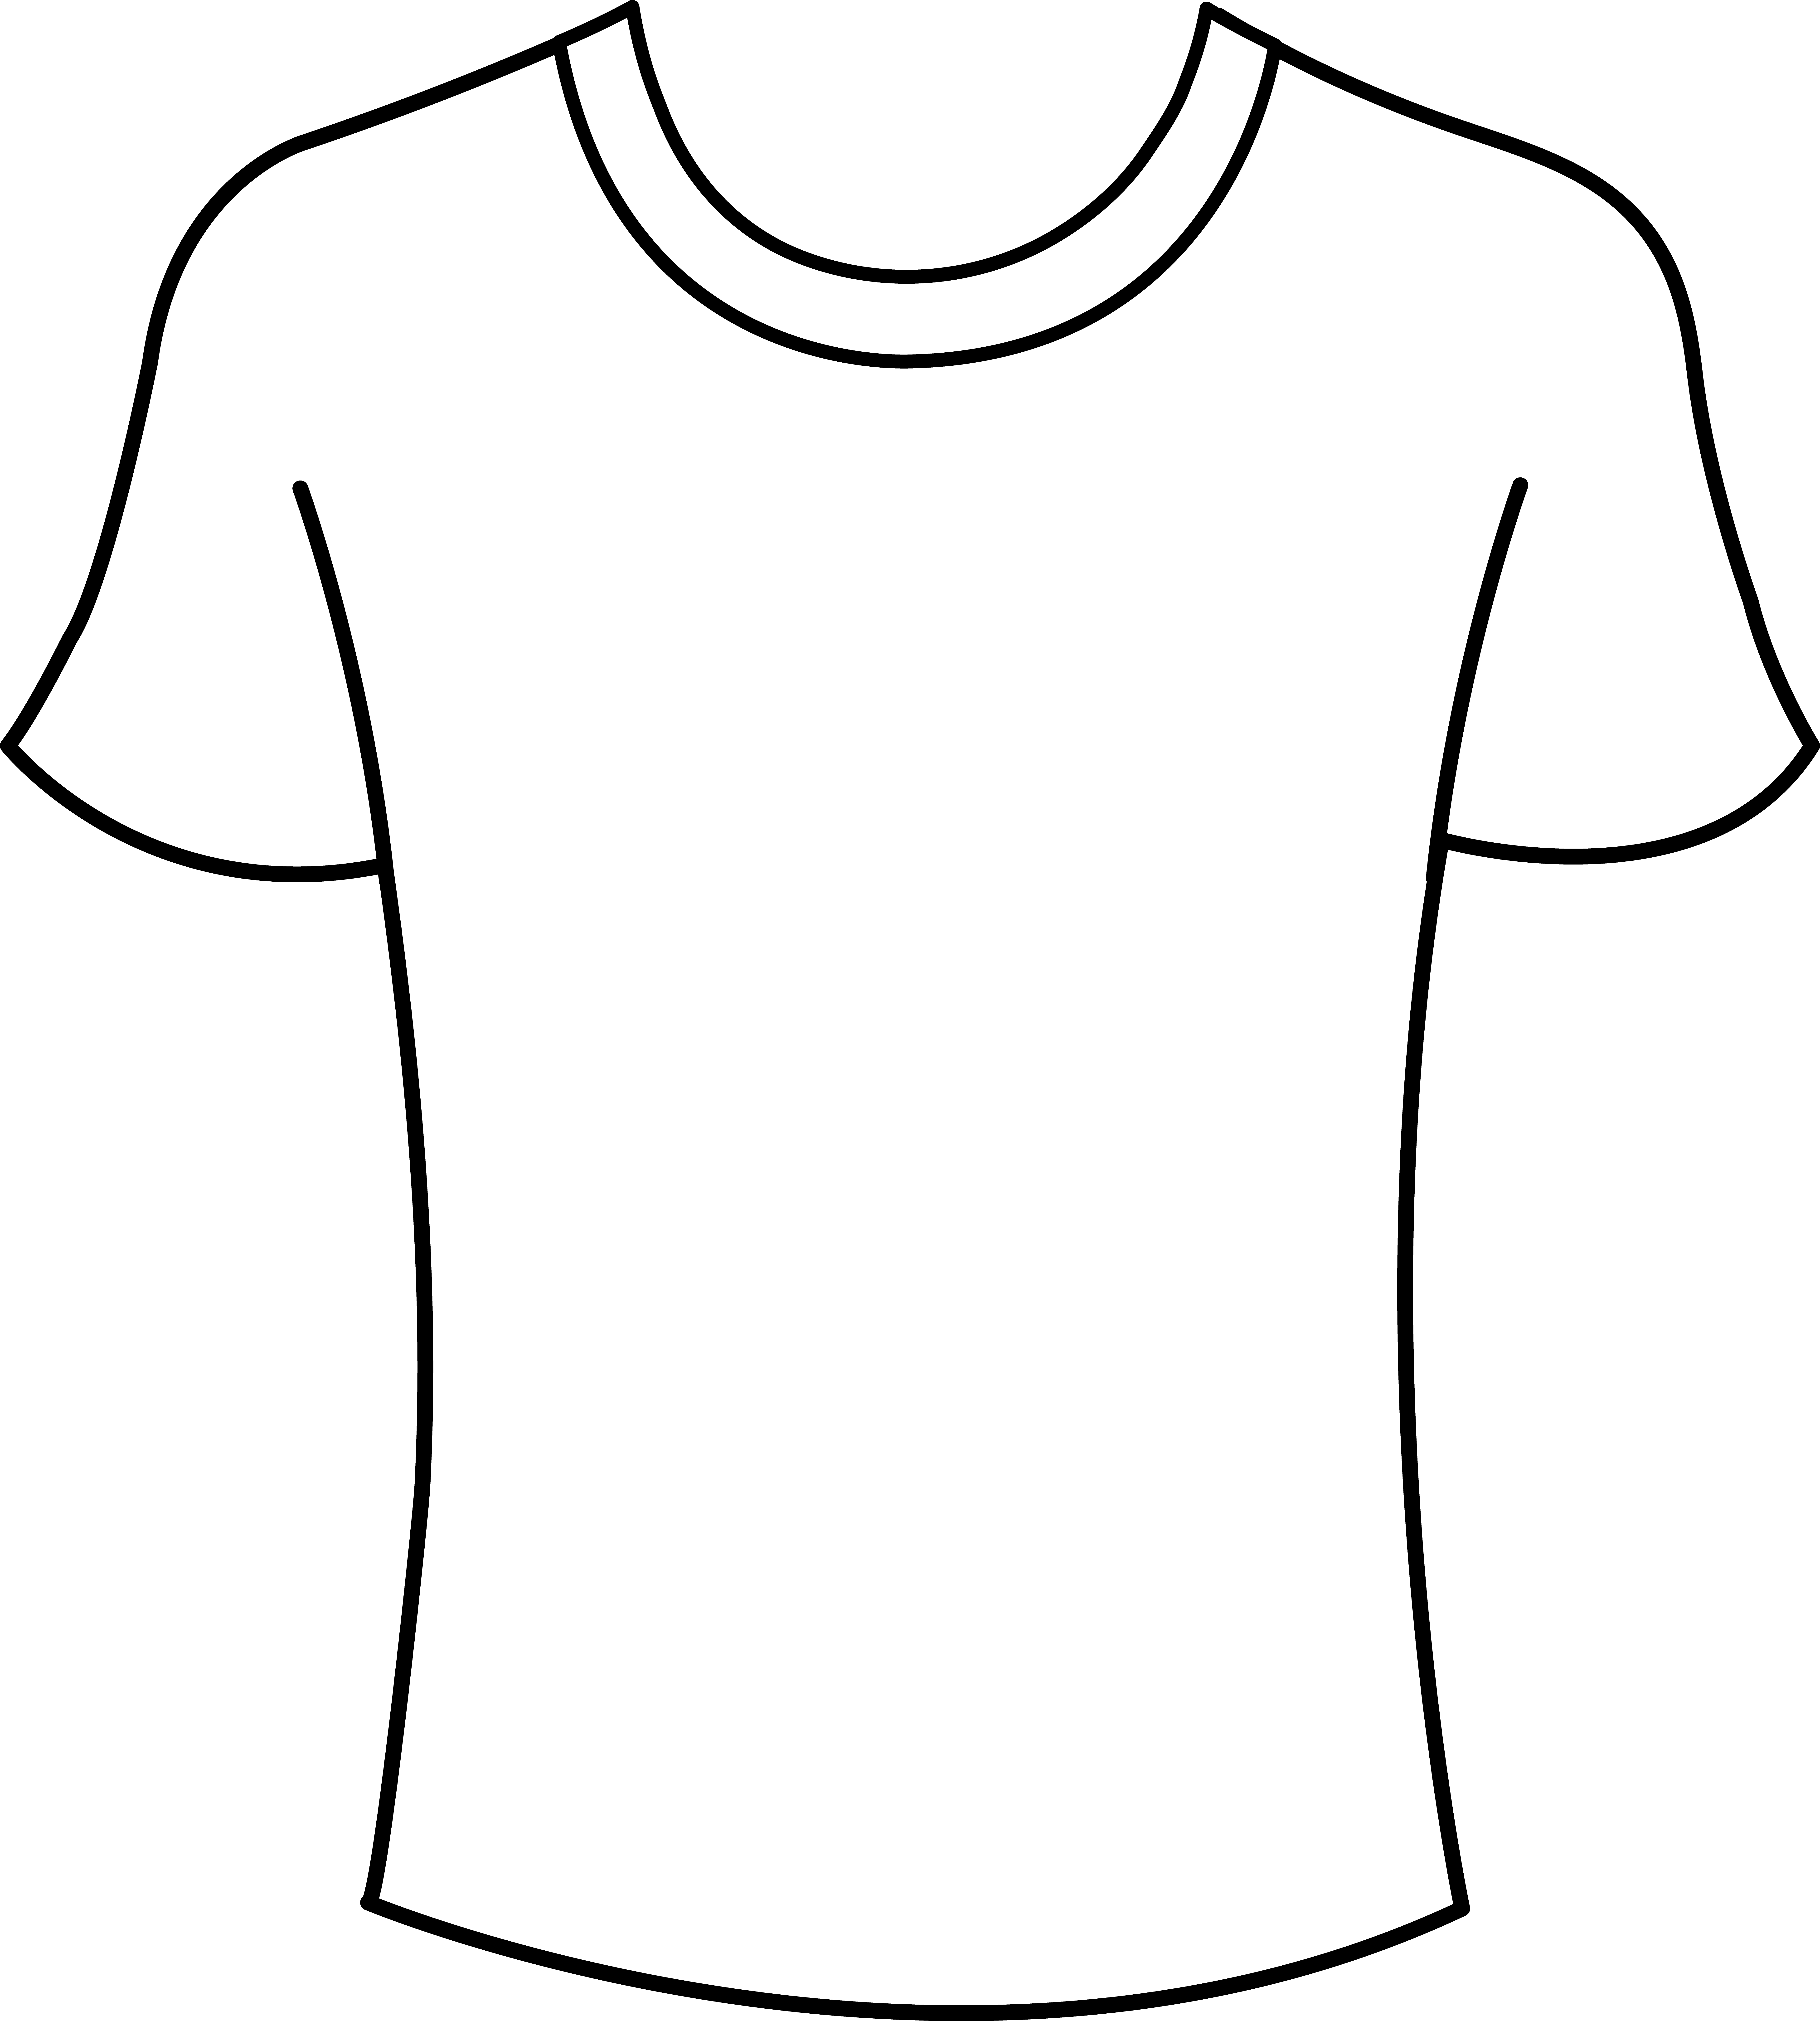 Simple Shirt Outline